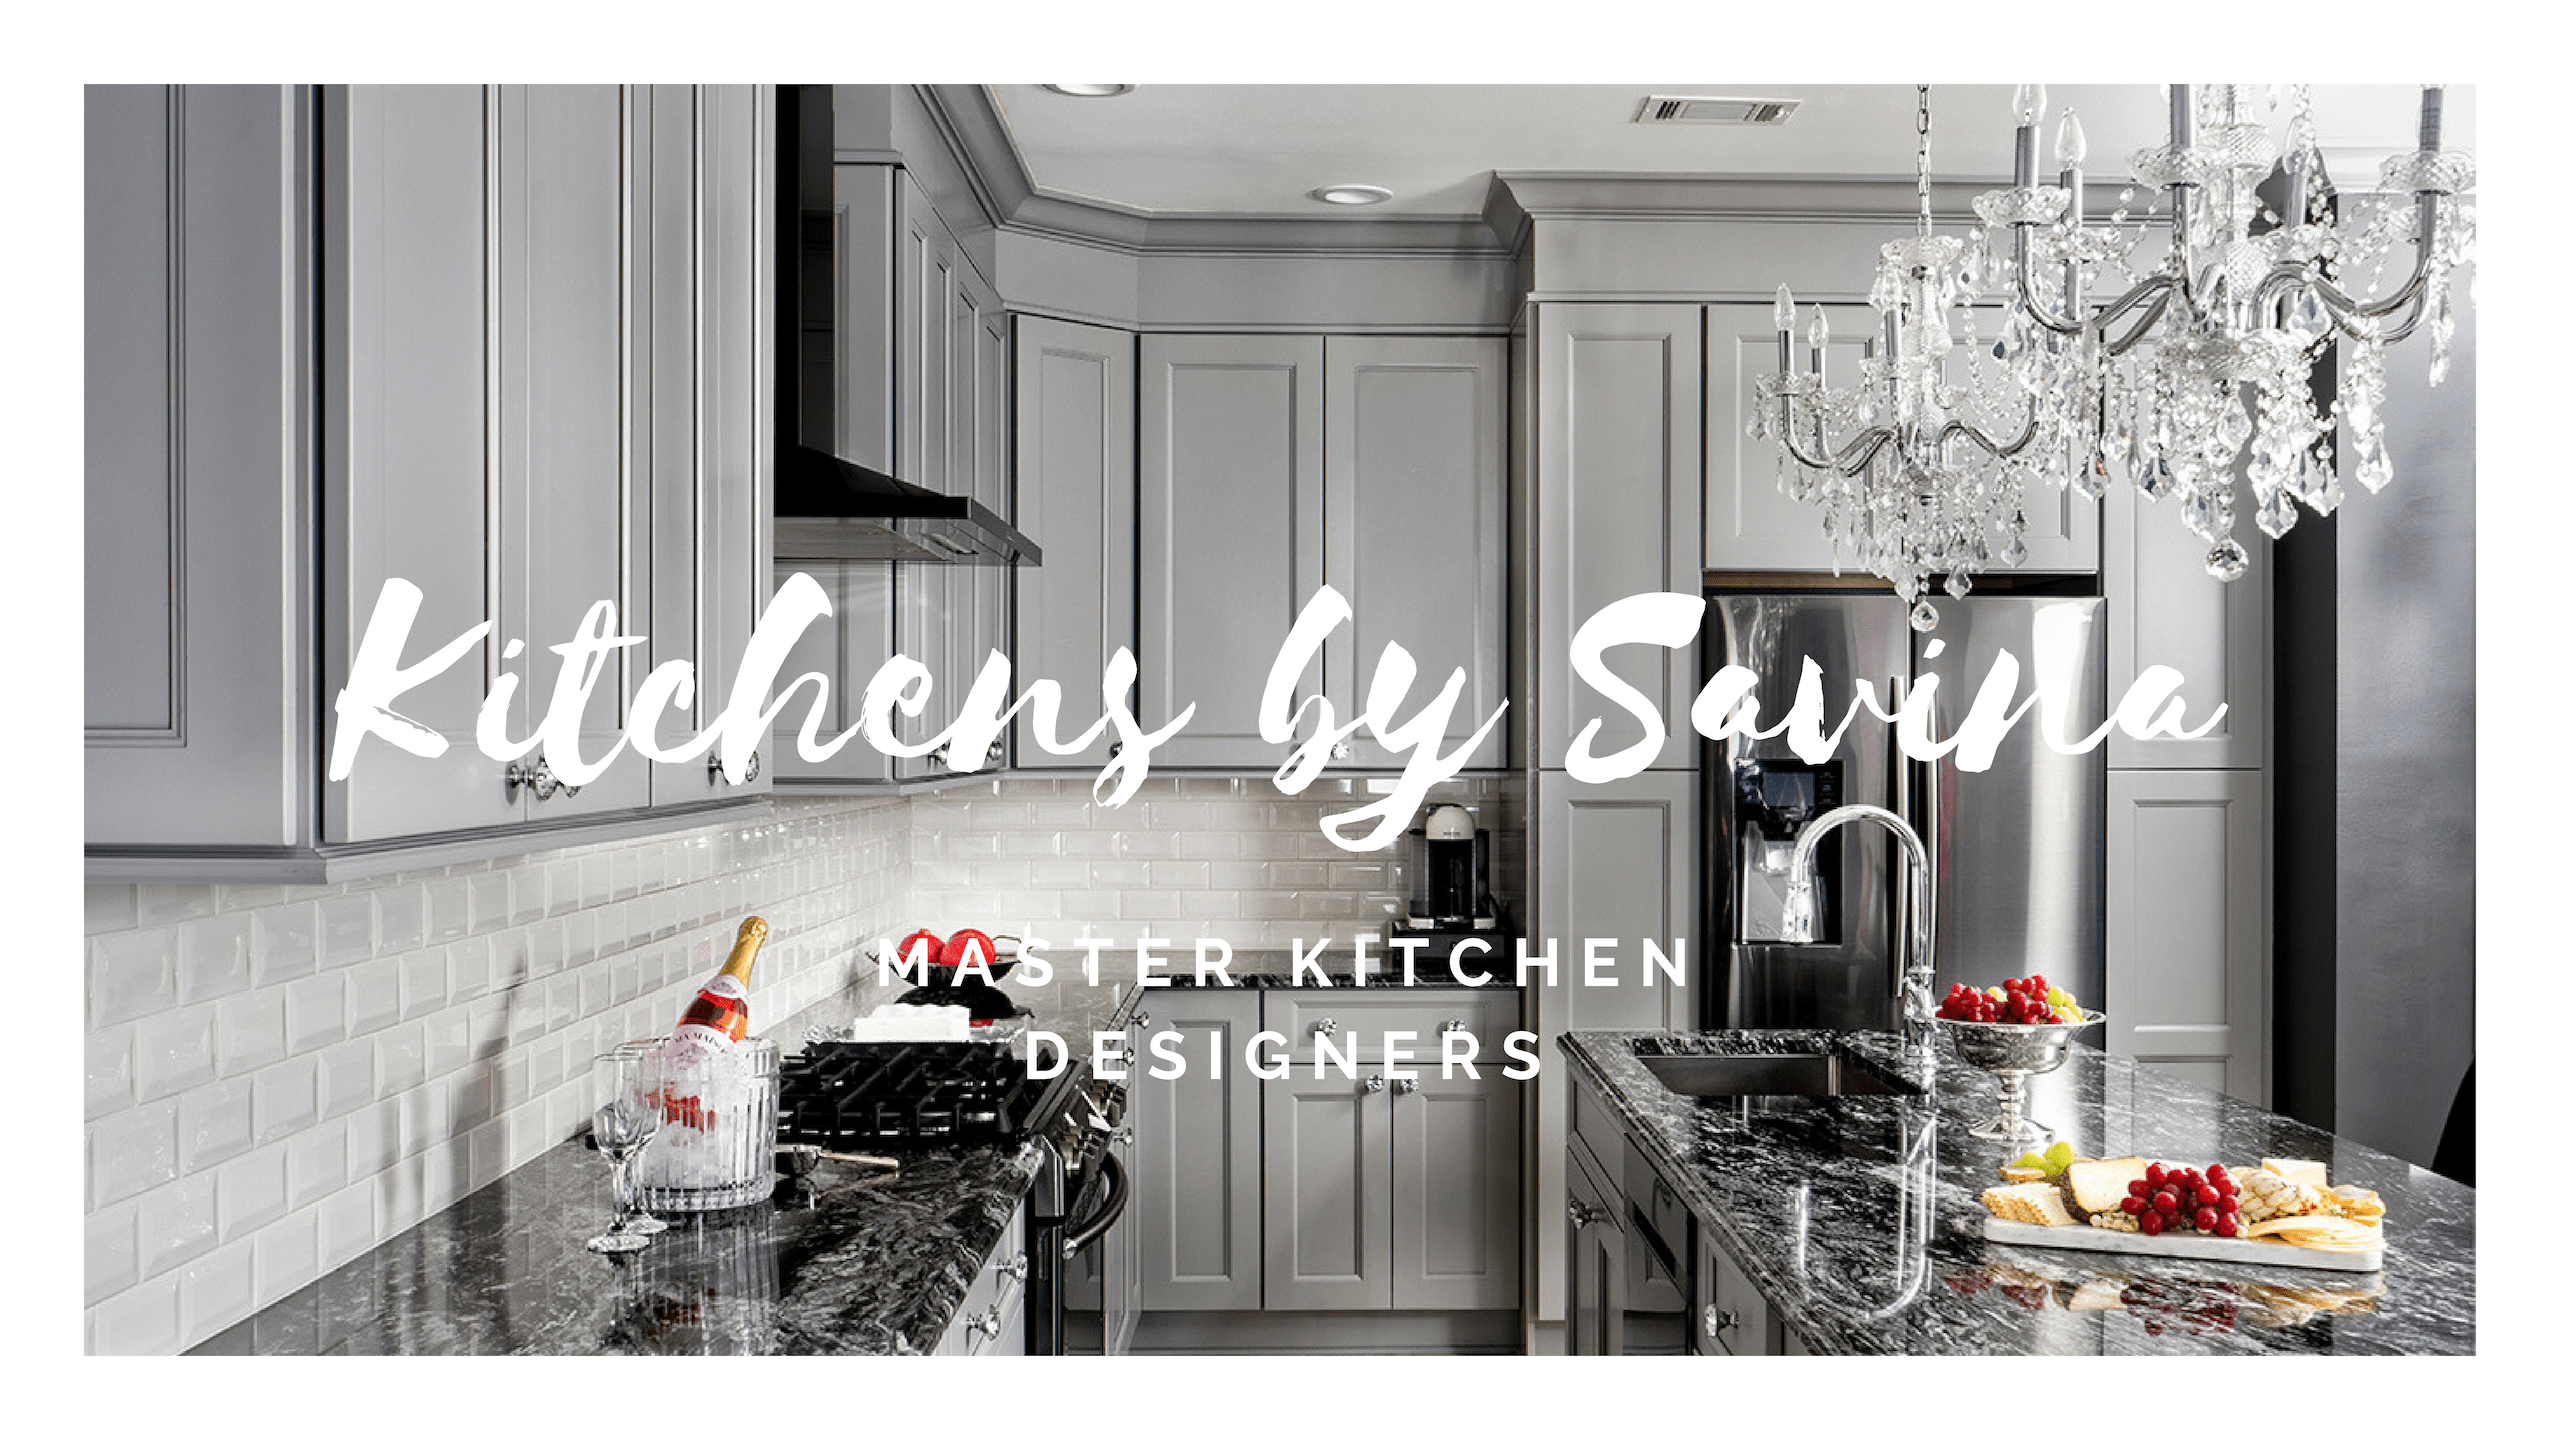 kichen showroom near me, affordable kitchens,